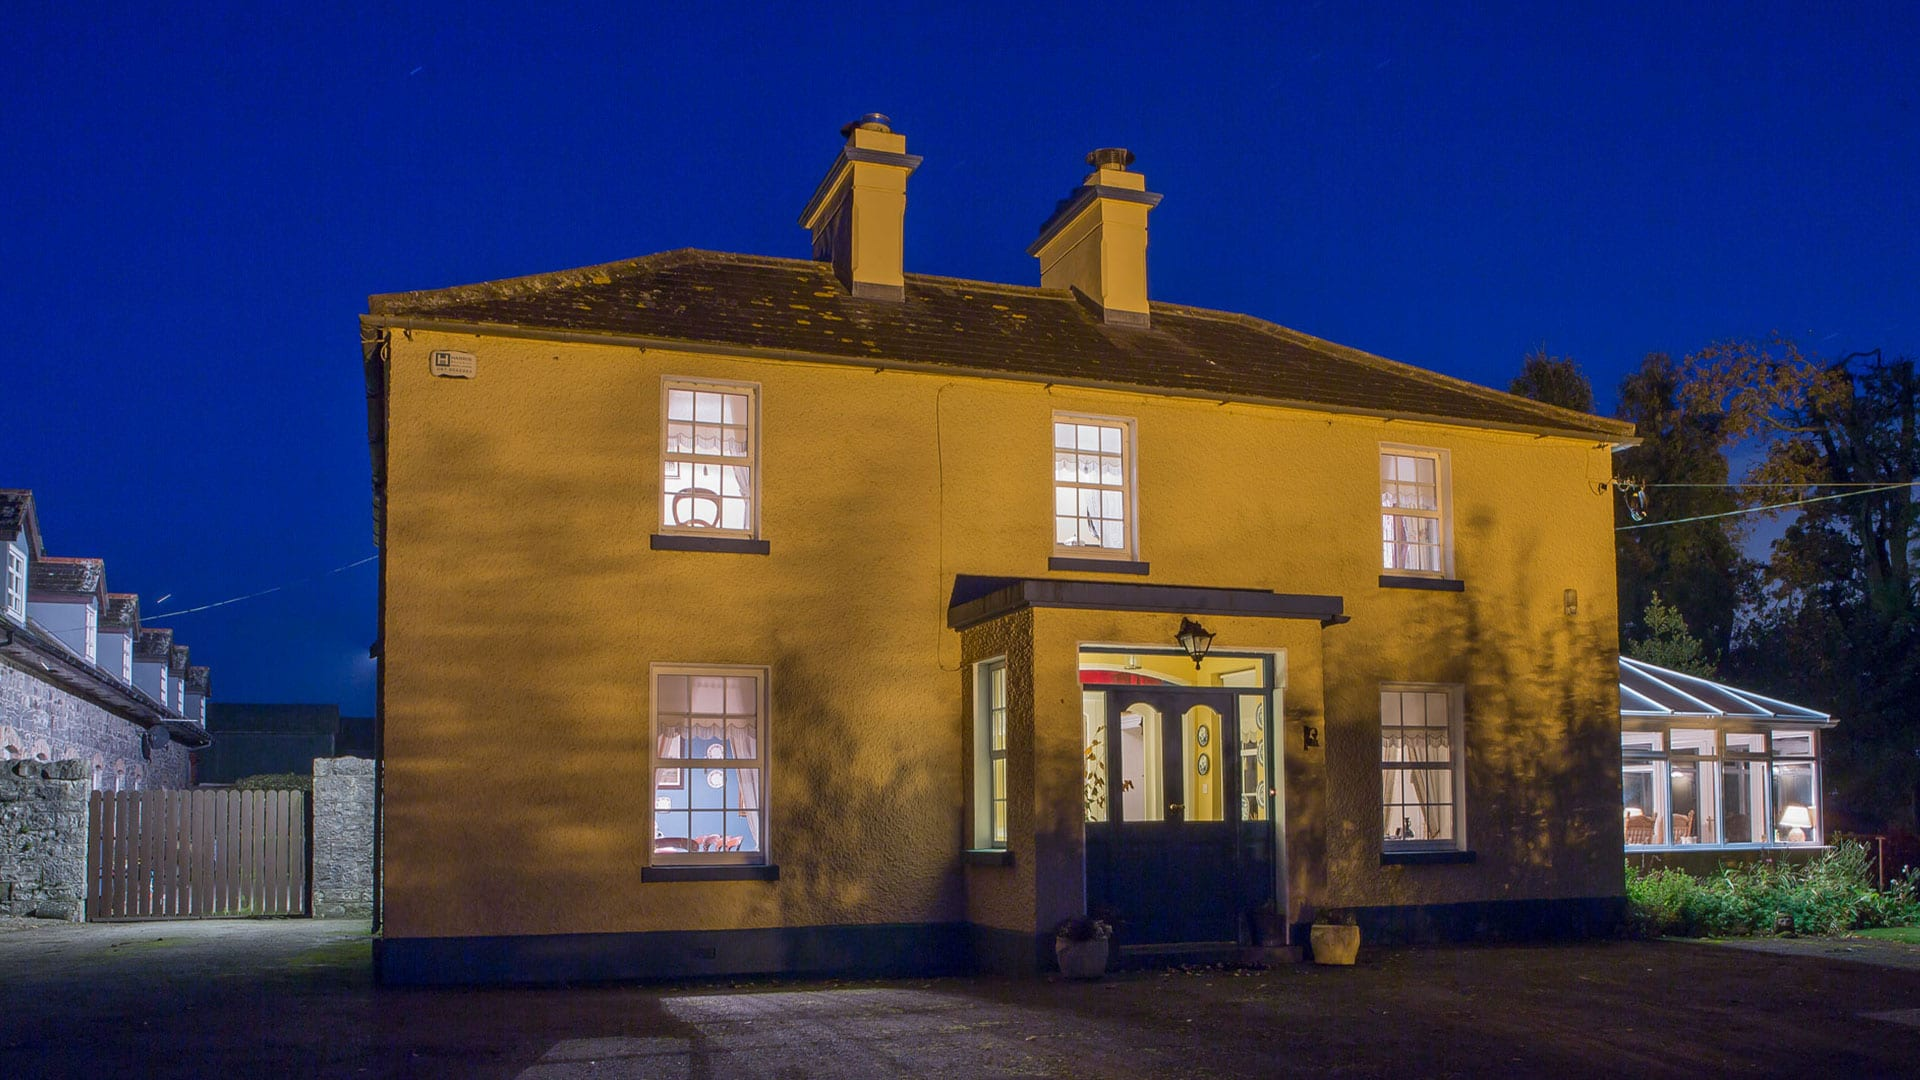 Dark-Night-House-Cottage-View-Holiday-Homes-Ireland-Meath-Dunshaughlin-Self-Catering-1